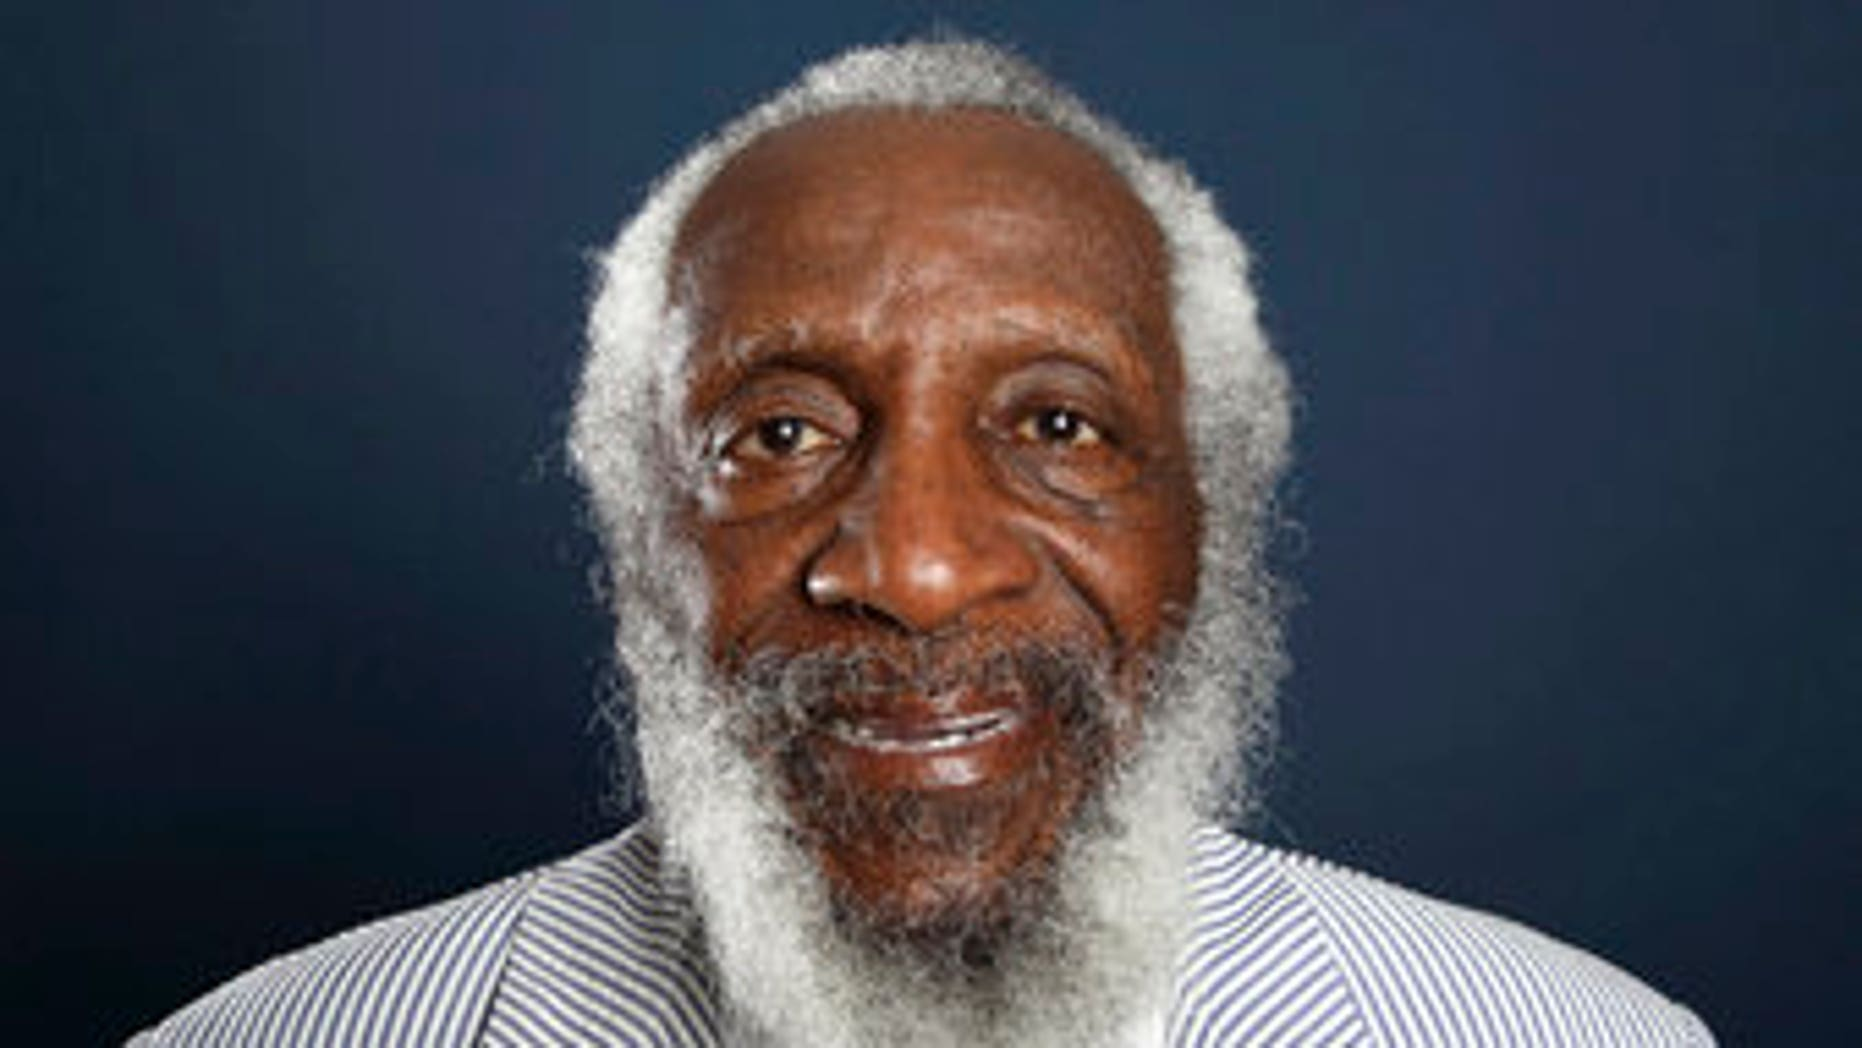 Comedian and activist Dick Gregory poses for a portrait during the PBS TCA Press Tour in Beverly Hills, Calif., in 2012.   (Photo by Matt Sayles/Invision/AP, File)